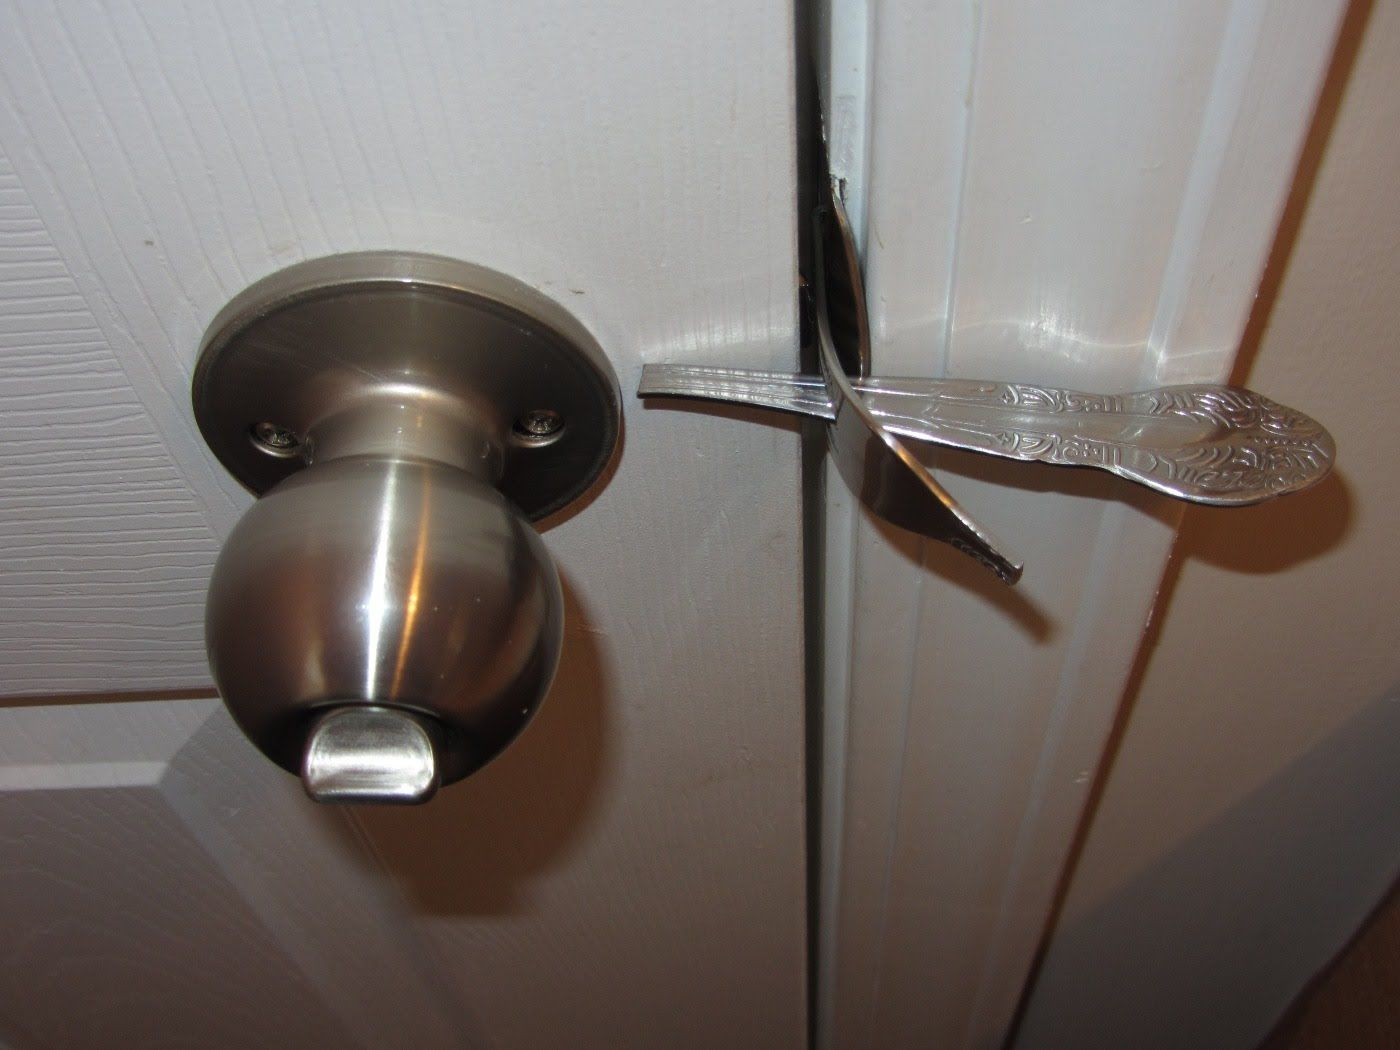 Try This Quot Dinner Fork Quot Hack For Extra Home Security Good